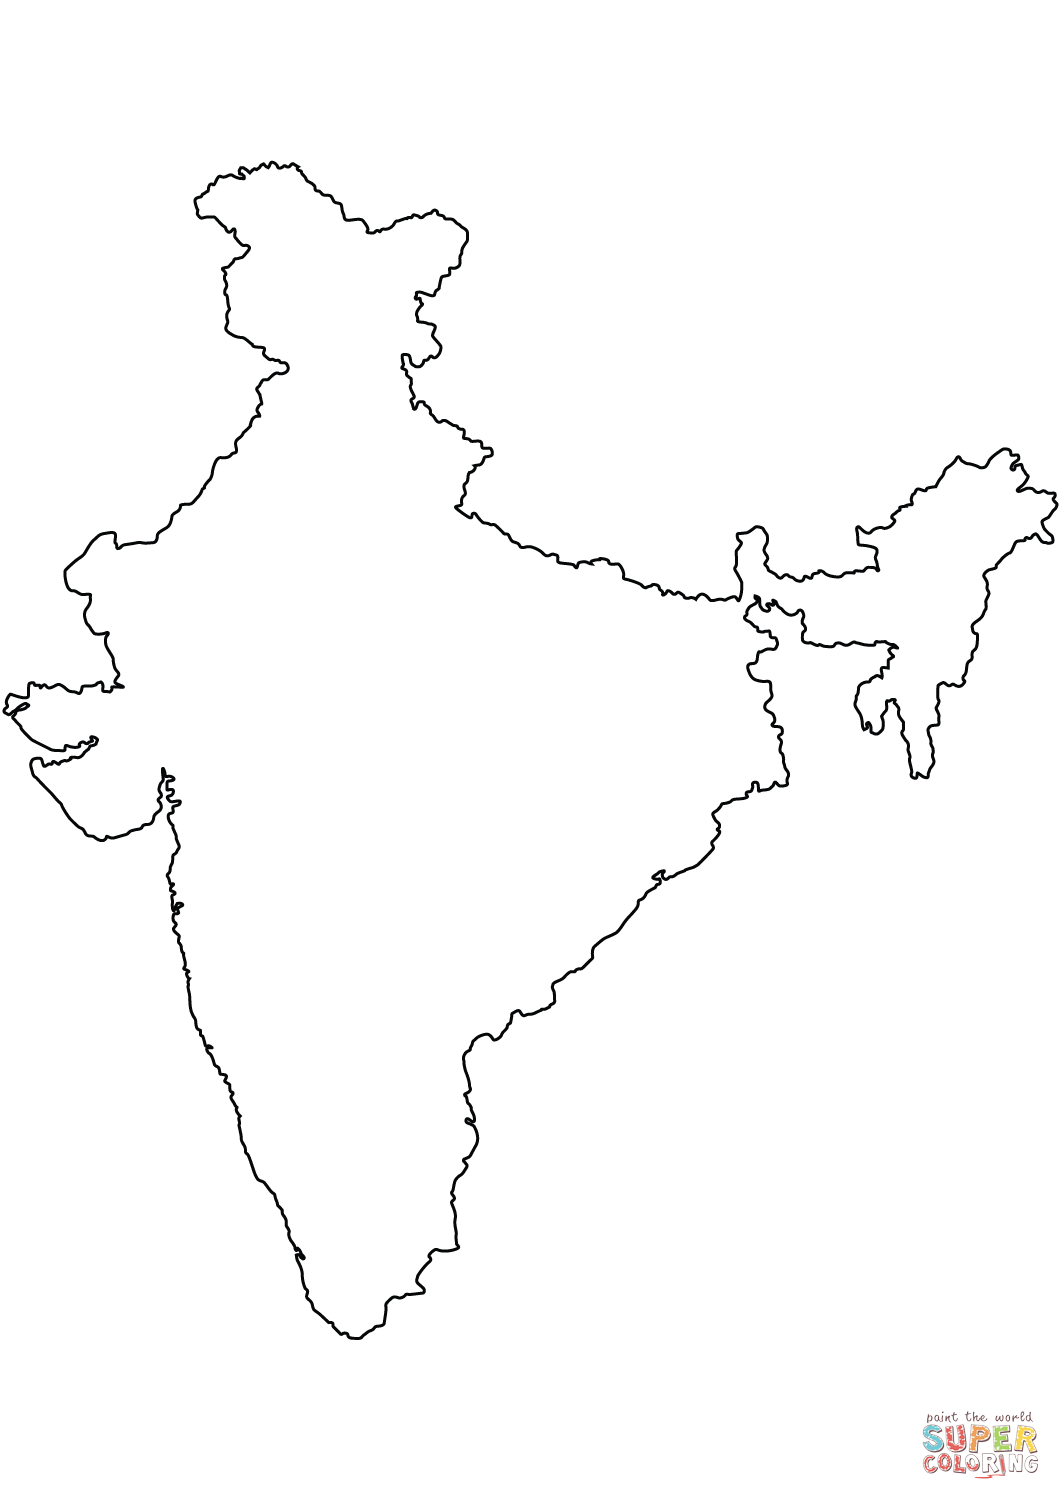 coloring map of india india map coloring pages india map coloring page ancient india coloring map of